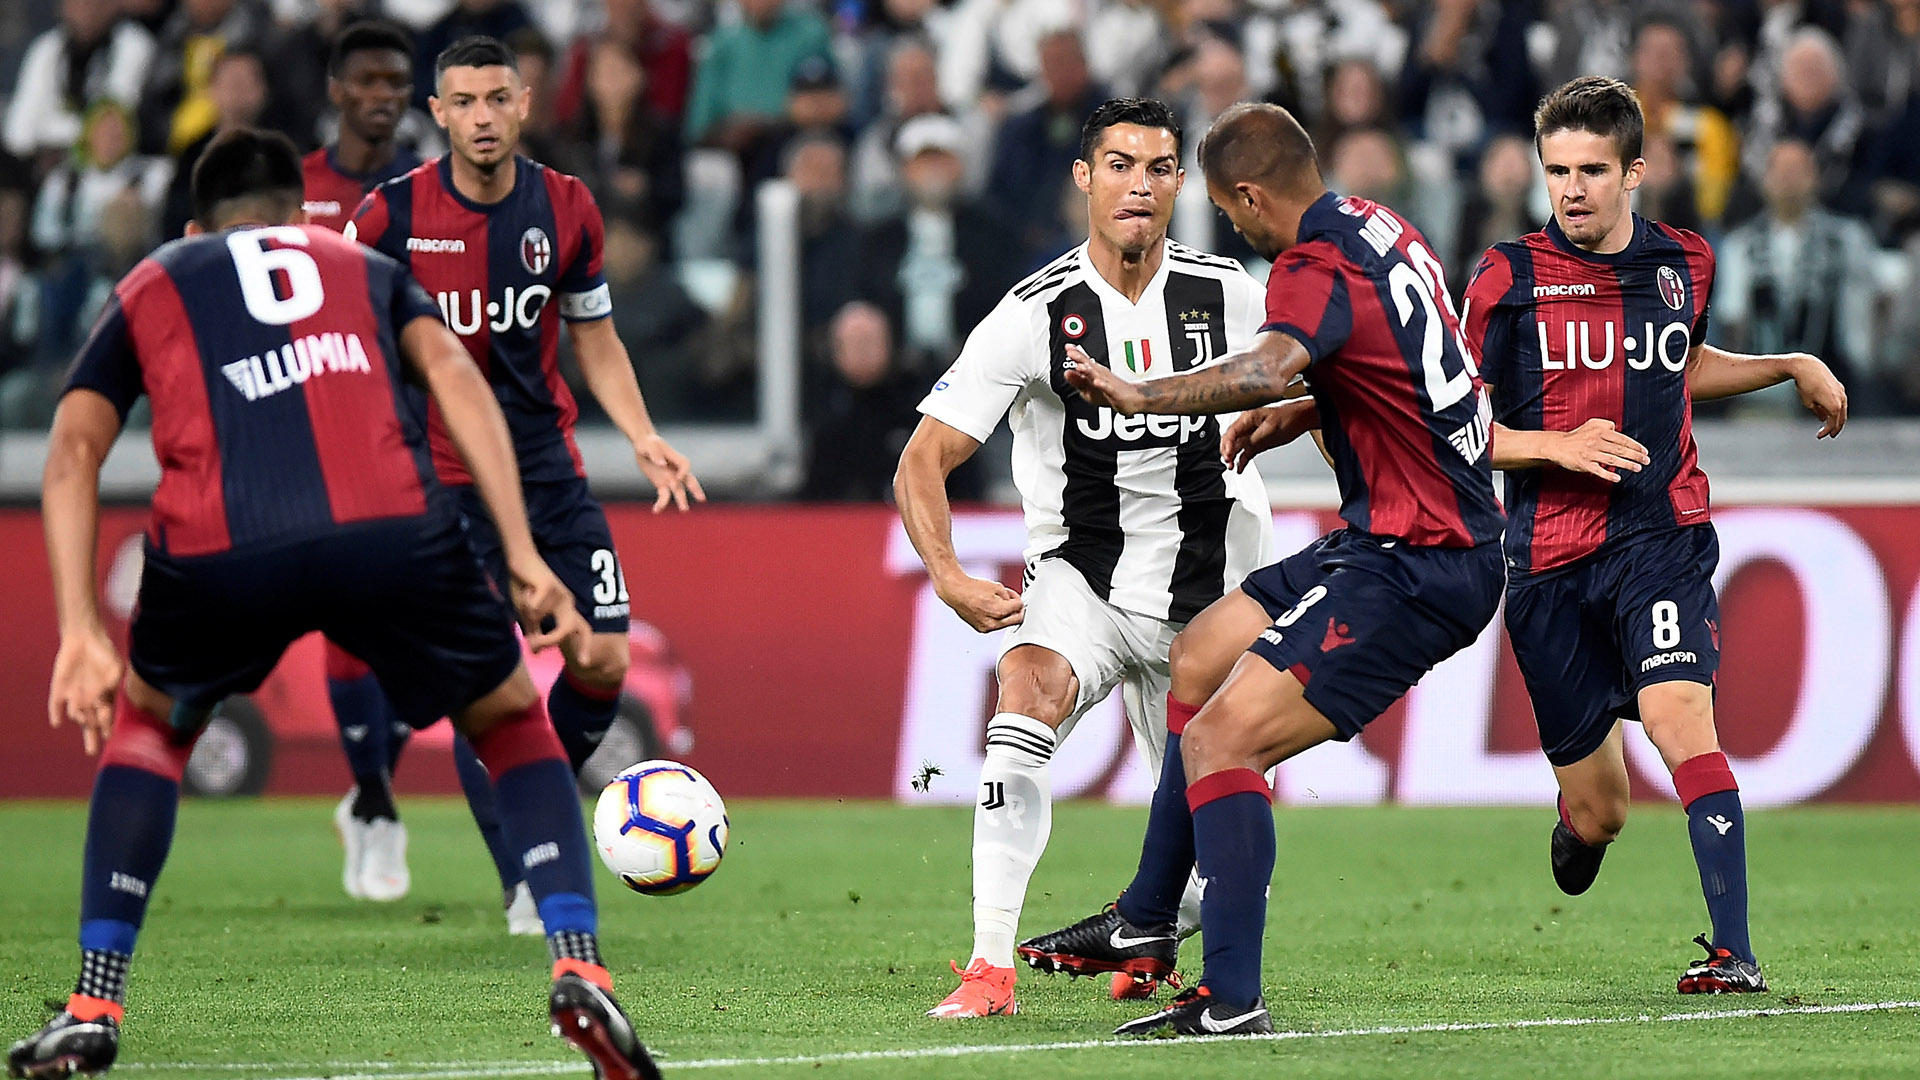 Soccer Football – Serie A – Juventus v Bologna – Allianz Stadium, Turin, Italy – September 26, 2018  Juventus' Cristiano Ronaldo in action during the match       REUTERS/Massimo Pinca